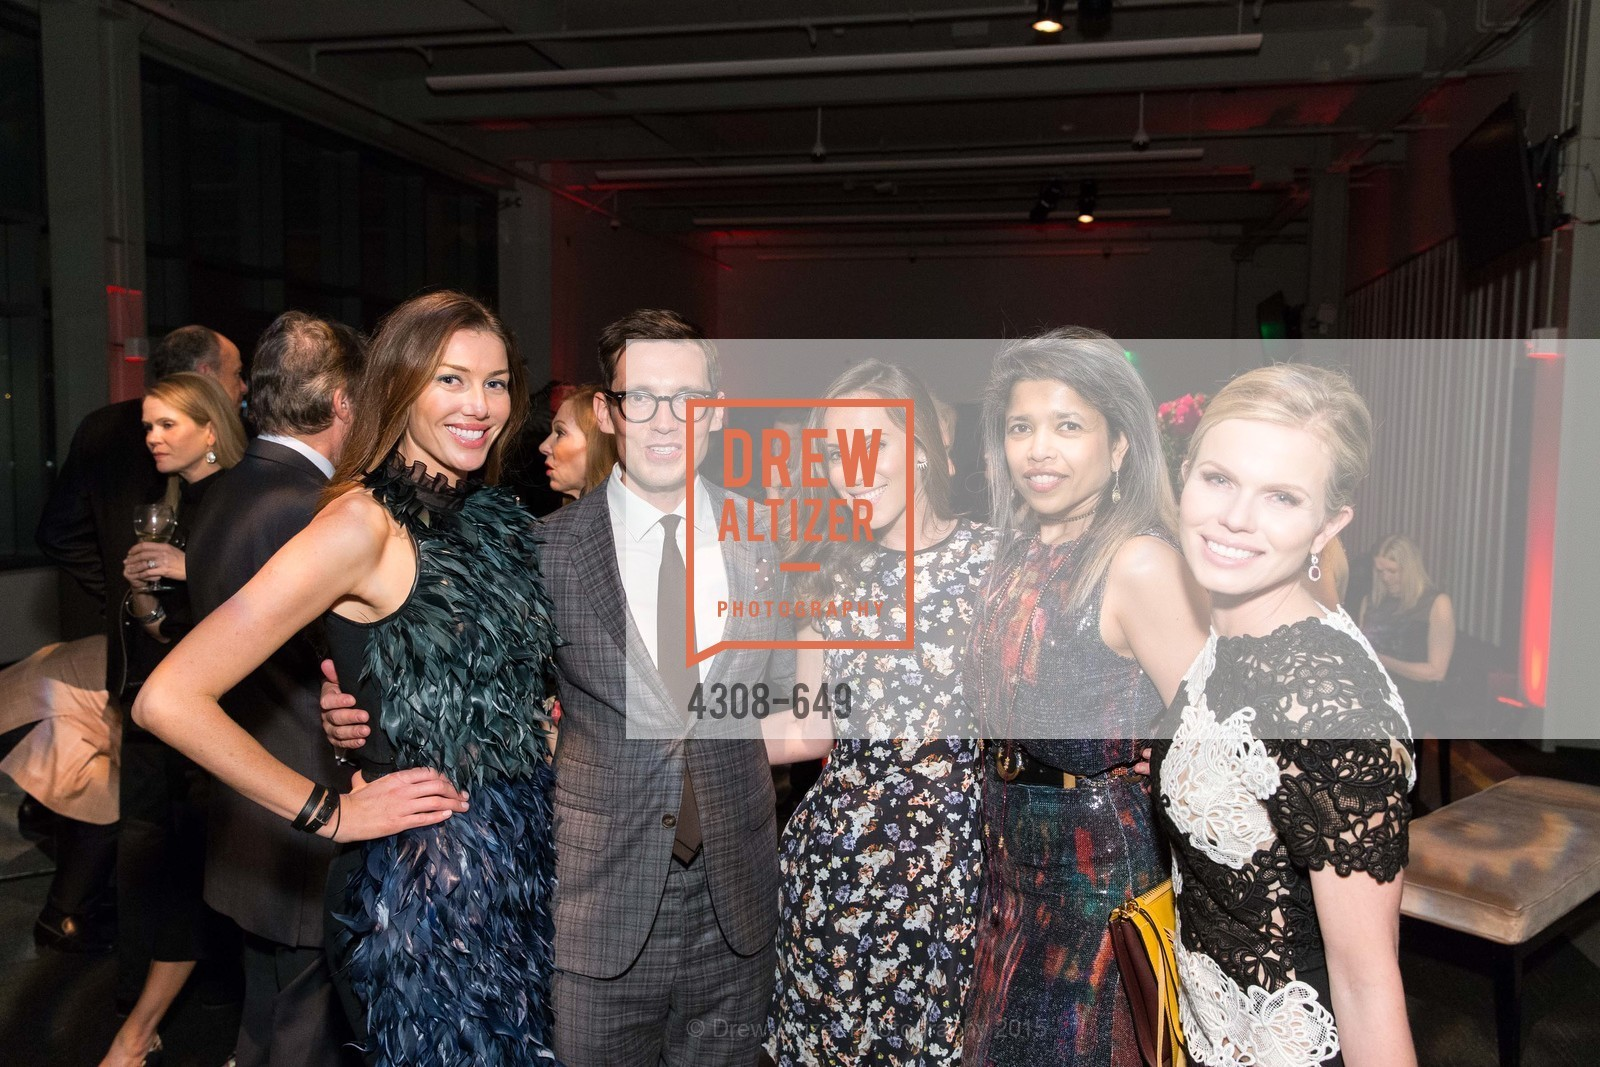 Sarah Somberg, Erdem Moralioglu, Cierra Sherwin, Deepa Pakianathan, Claire Fluhr, Fashion Forward: An Evening with Erdem presented by SF Opera Guild and Saks Fifth Avenue, Pier 27. Pier 27, The Embarcadero, March 25th, 2015